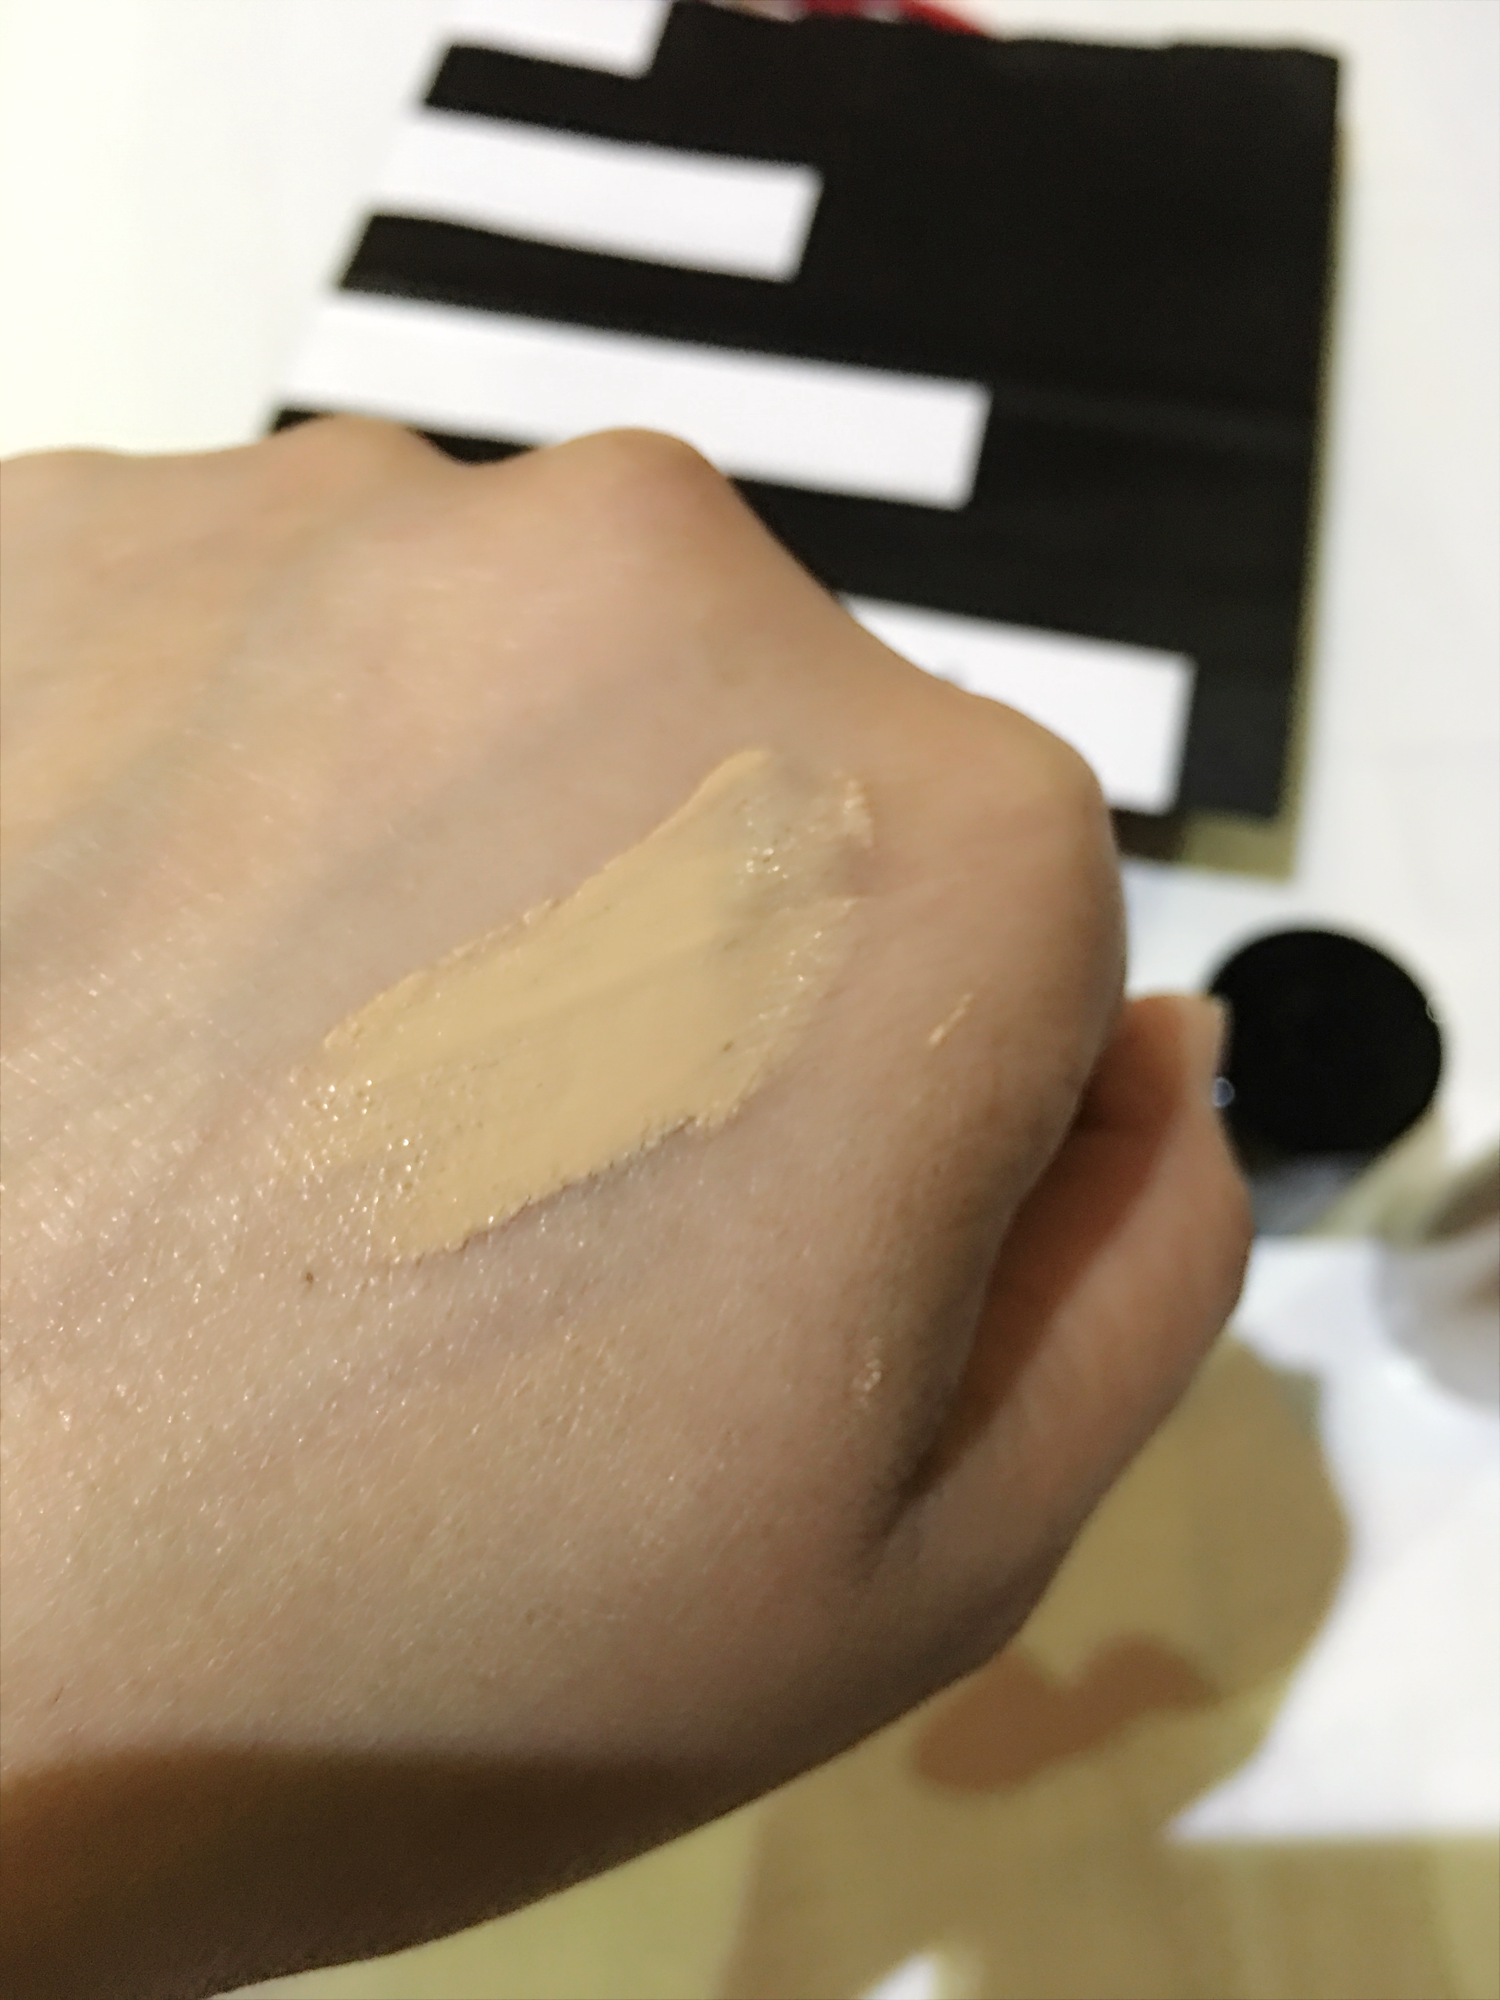 ... makeup forever ultra hd invisible cover foundation shade 125 ...